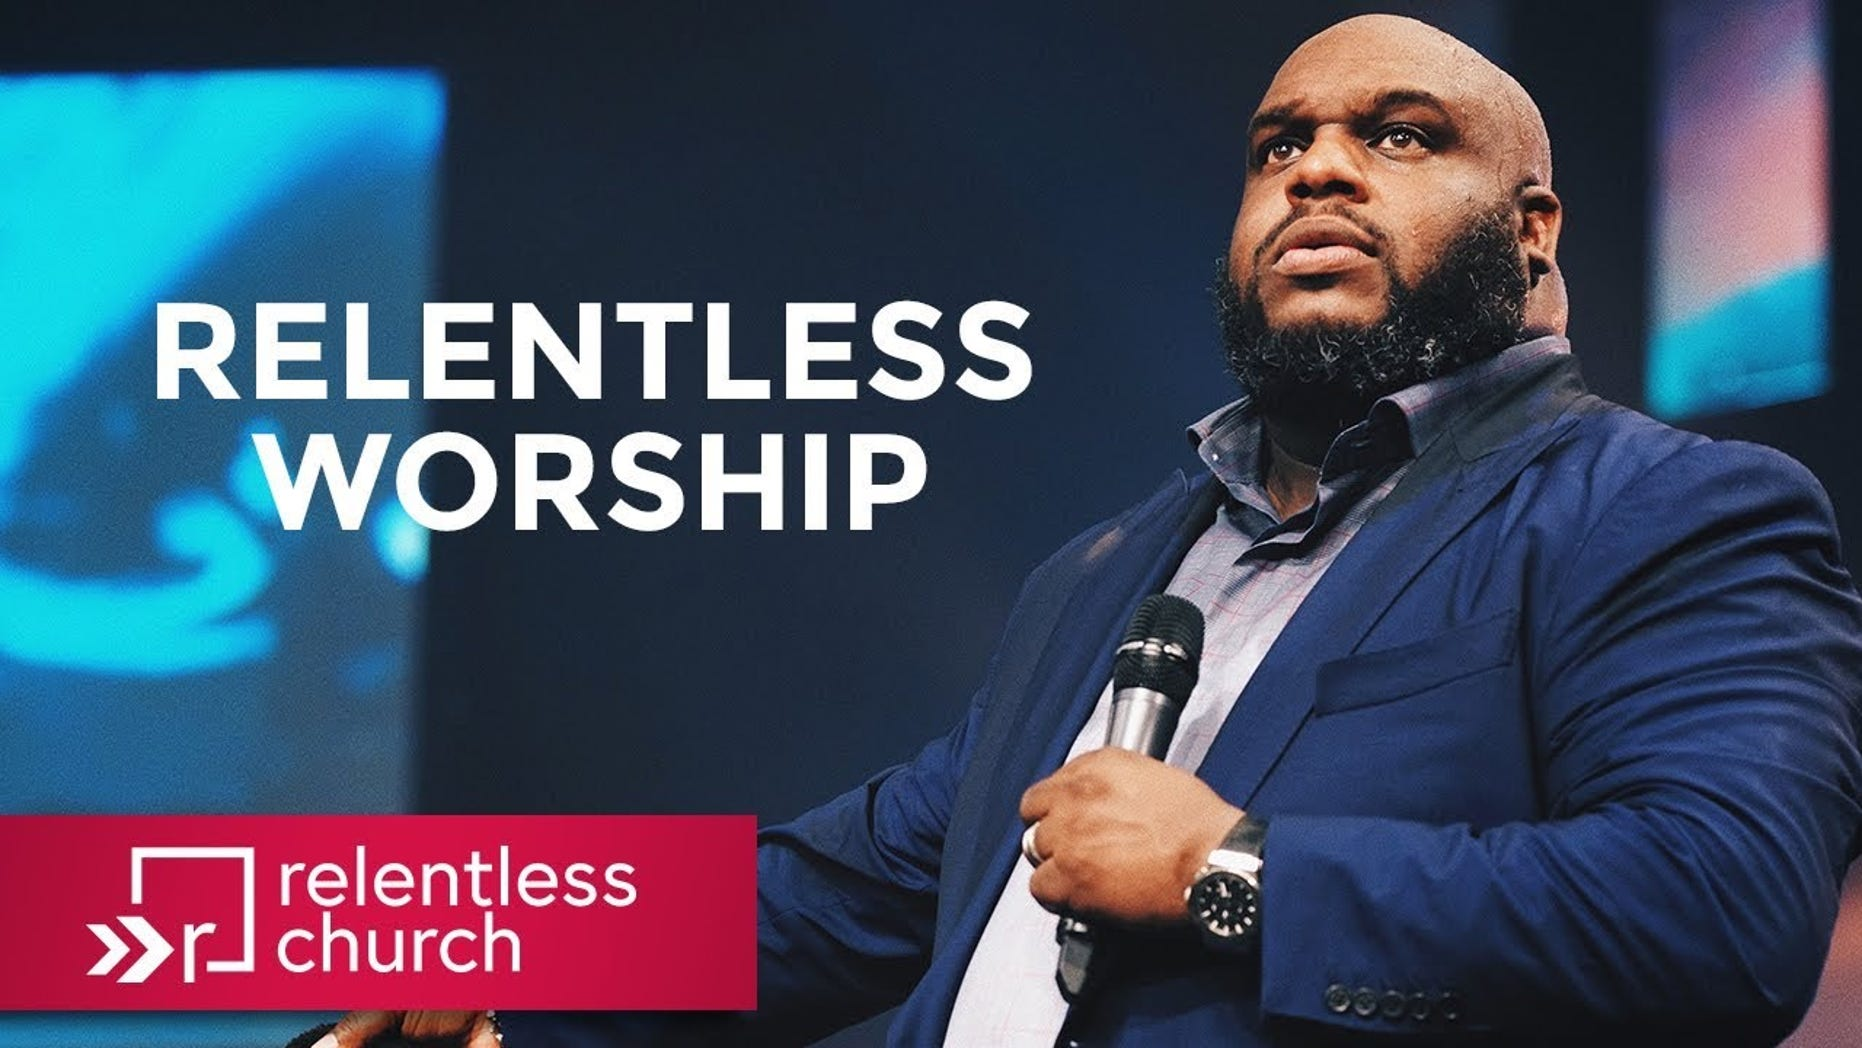 John Gray, of Relentless Church in Greenville, S.C., came under fire for his lavish lifestyle after buying his wife a Lamborghini and wearing flashy Yeezy sneakers.